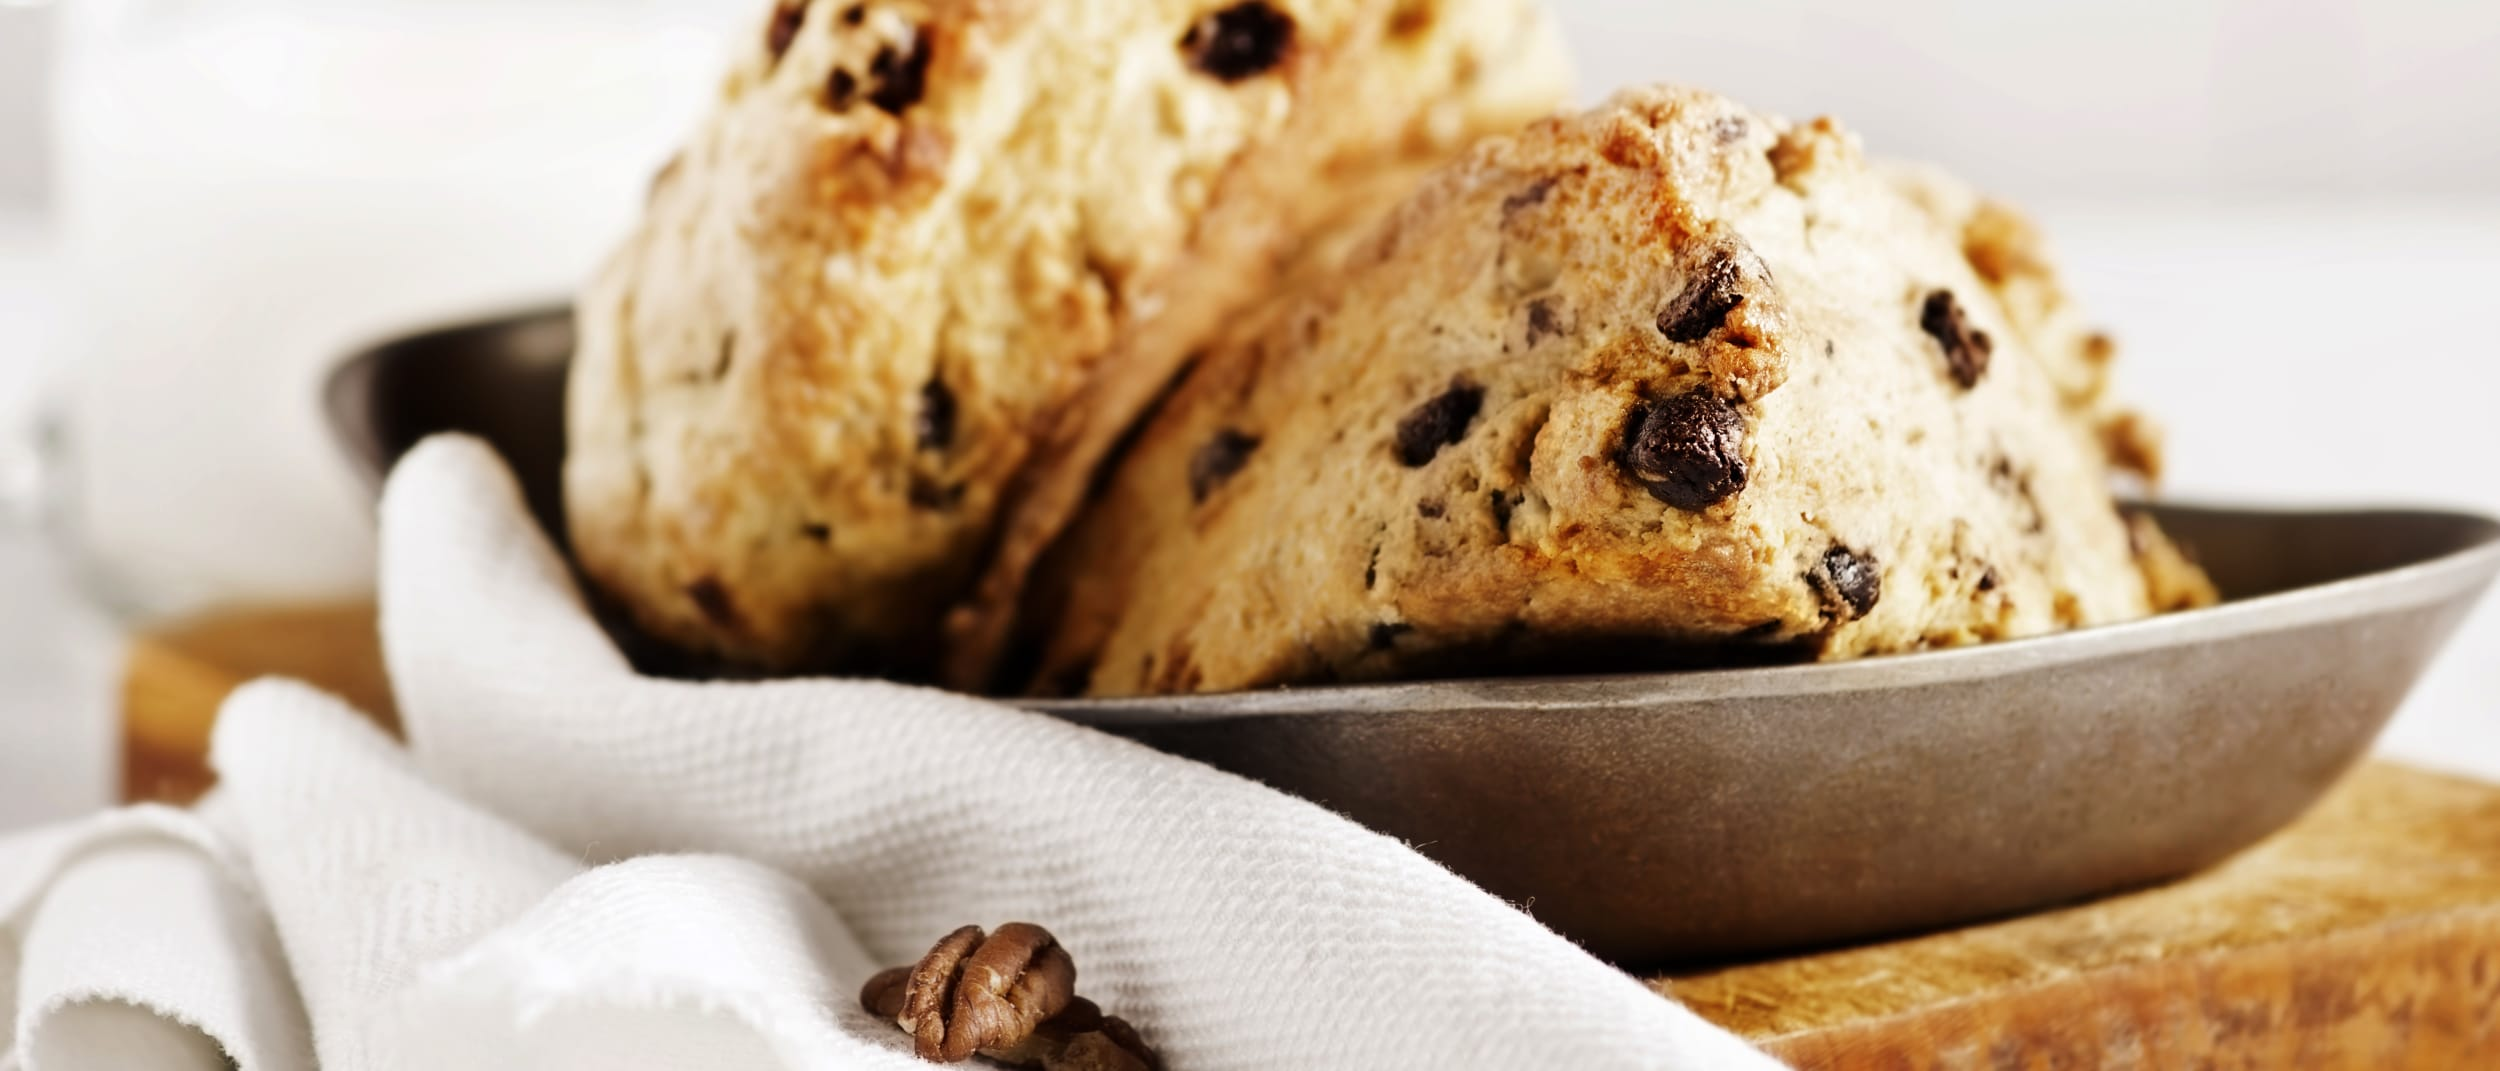 Bakers Delight: banana chocolate chip scones